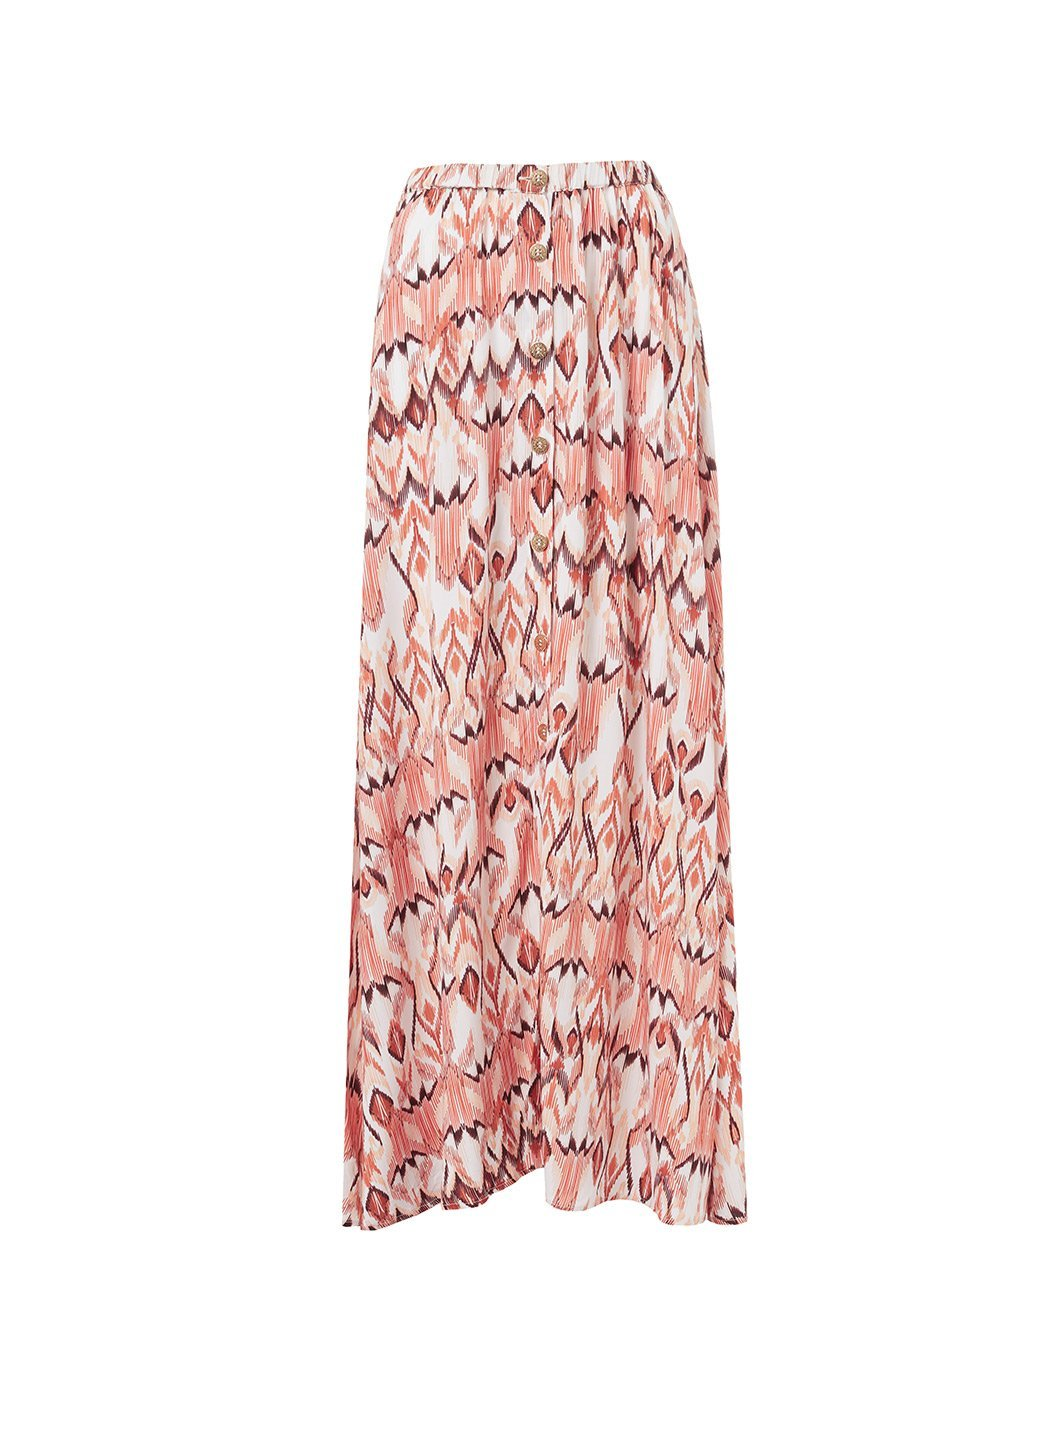 daisy ikat buttondown maxi skirt 2019